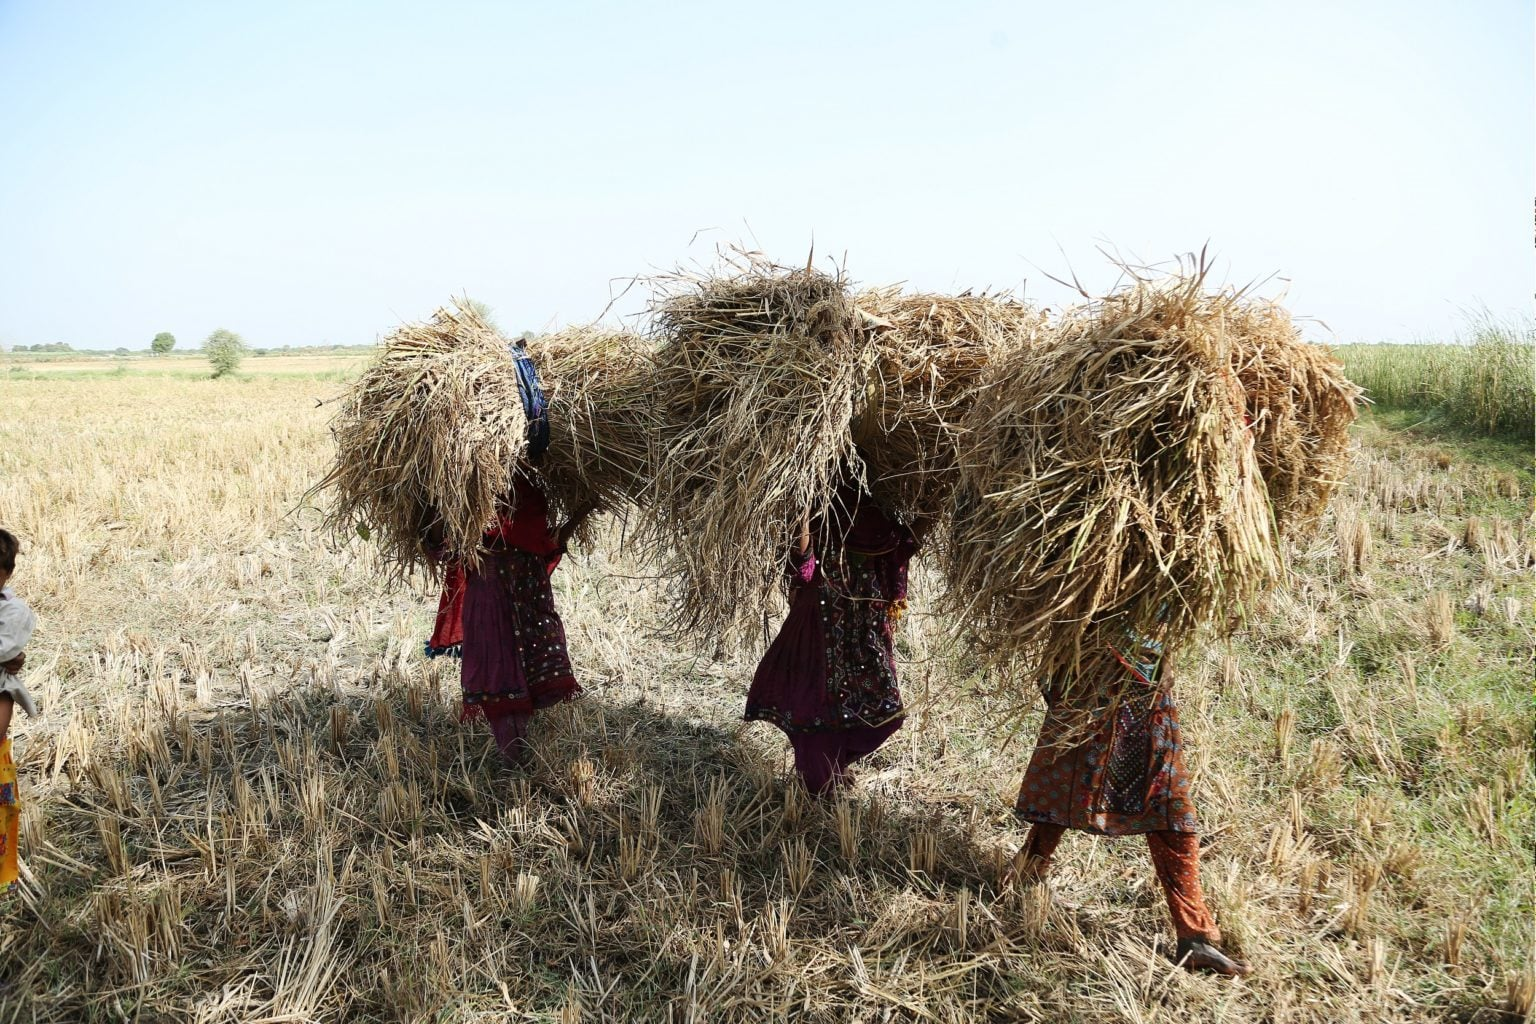 Landless women farmers collecting rice straw from field areas, near village Khan Muhammad Panhwar, district Hyderabad. — Photo by Manoj Genani